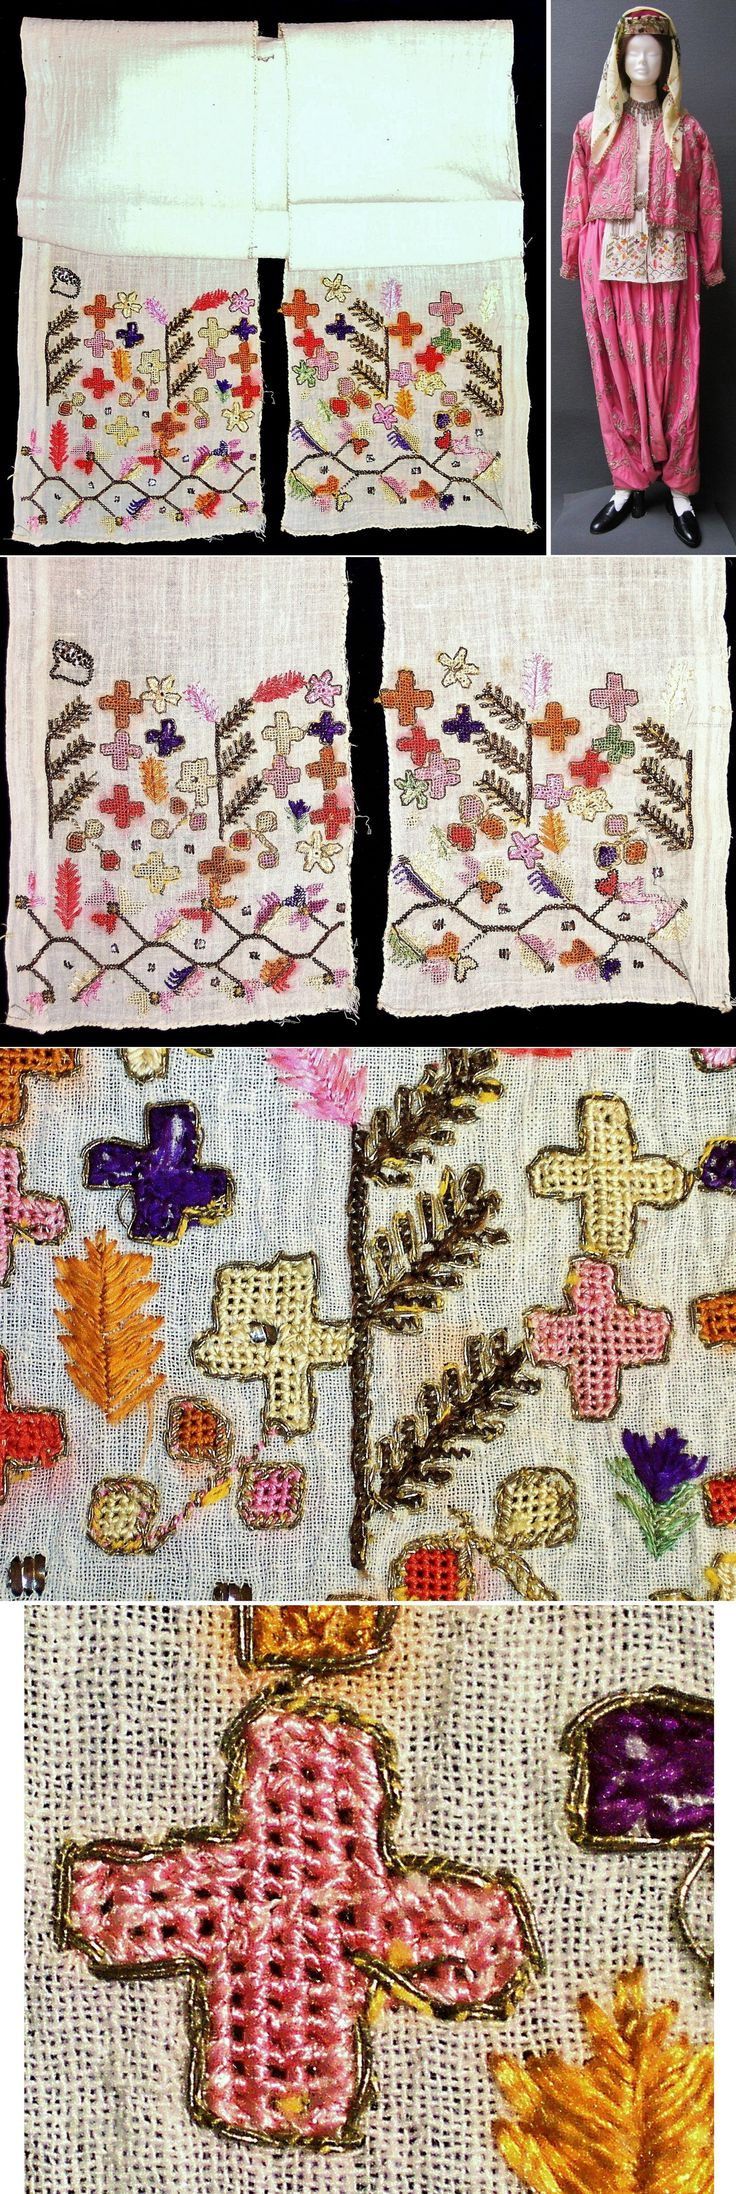 An 'uçkur' (sash/waist band), generally worn by women. From western Anatolia, ca. early 20th c. Cotton, adorned with two-sided (= identical on both sides) embroidery in silk & golden metallic thread + small motifs in 'tel kırma' (narrow metallic strips stuck through the fabric and then folded). Probably an apprentice's work (= young girl). The 'Greek cross'-motives indicate a possible 'Rum' (Greek Anatolian) origin. (Inv.n° brdw041 - Kavak Collection - Antwerpen/Belgium).